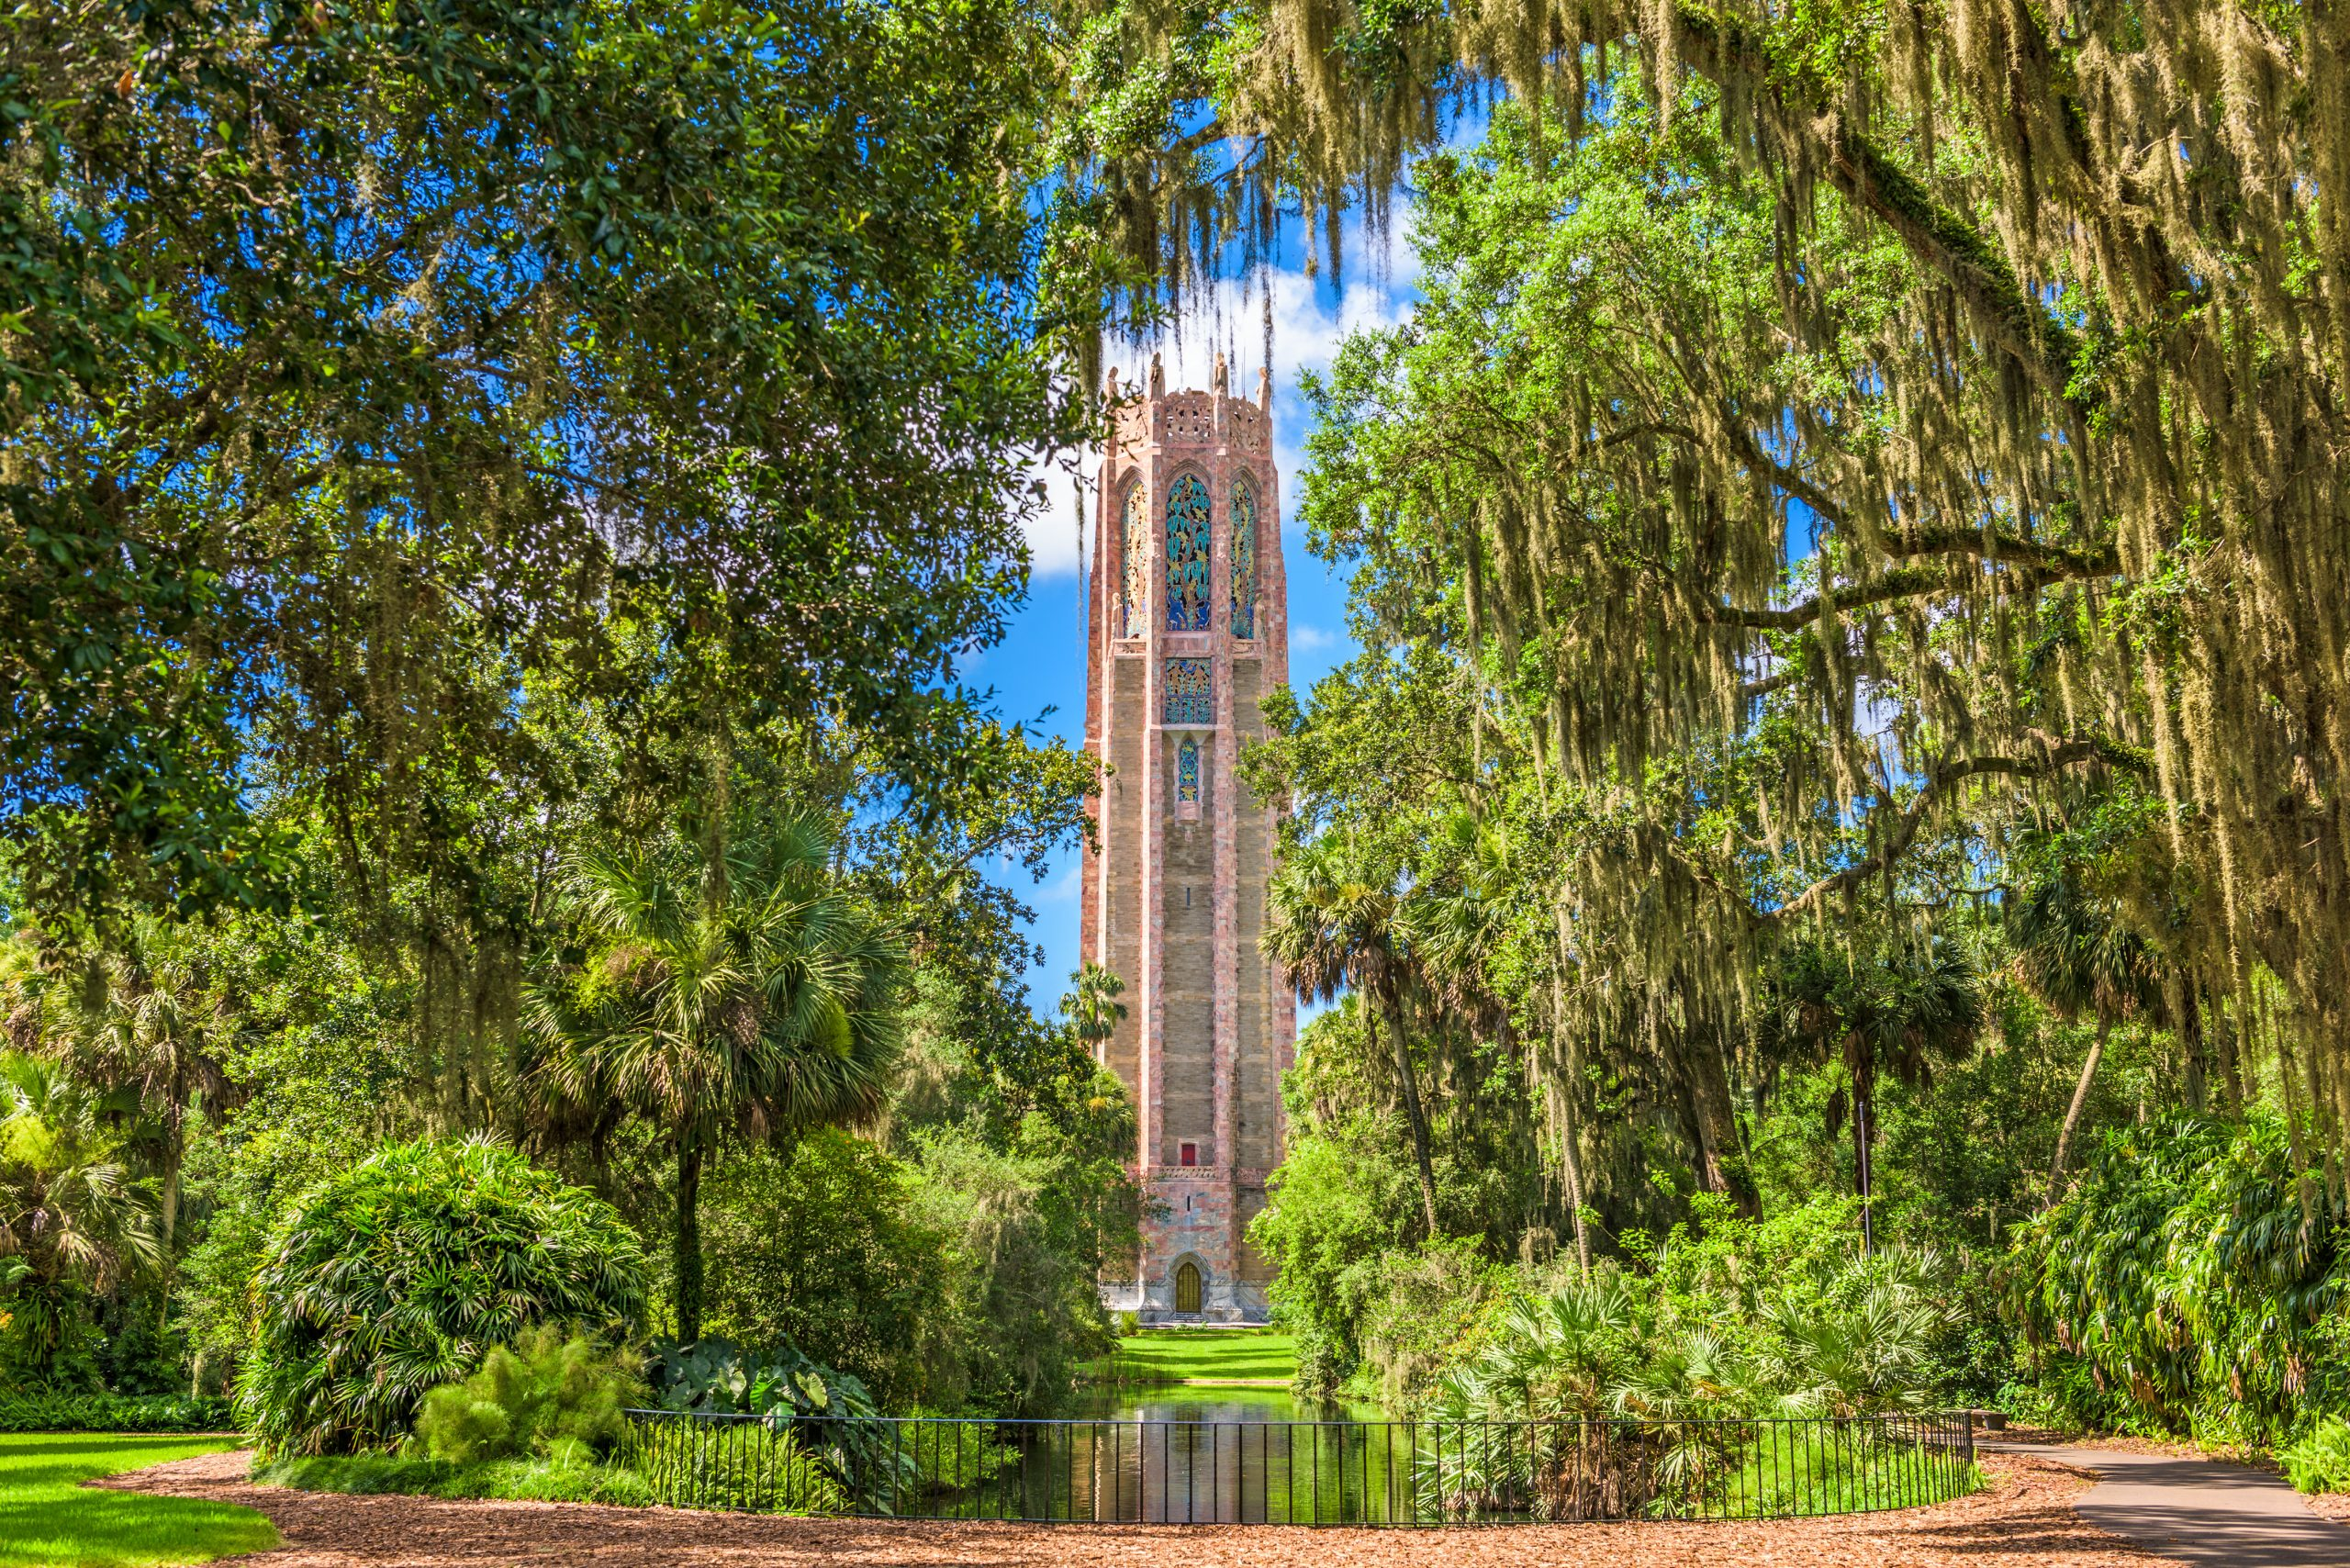 Bok Tower Gardens in among the top 10 public gardens in the South